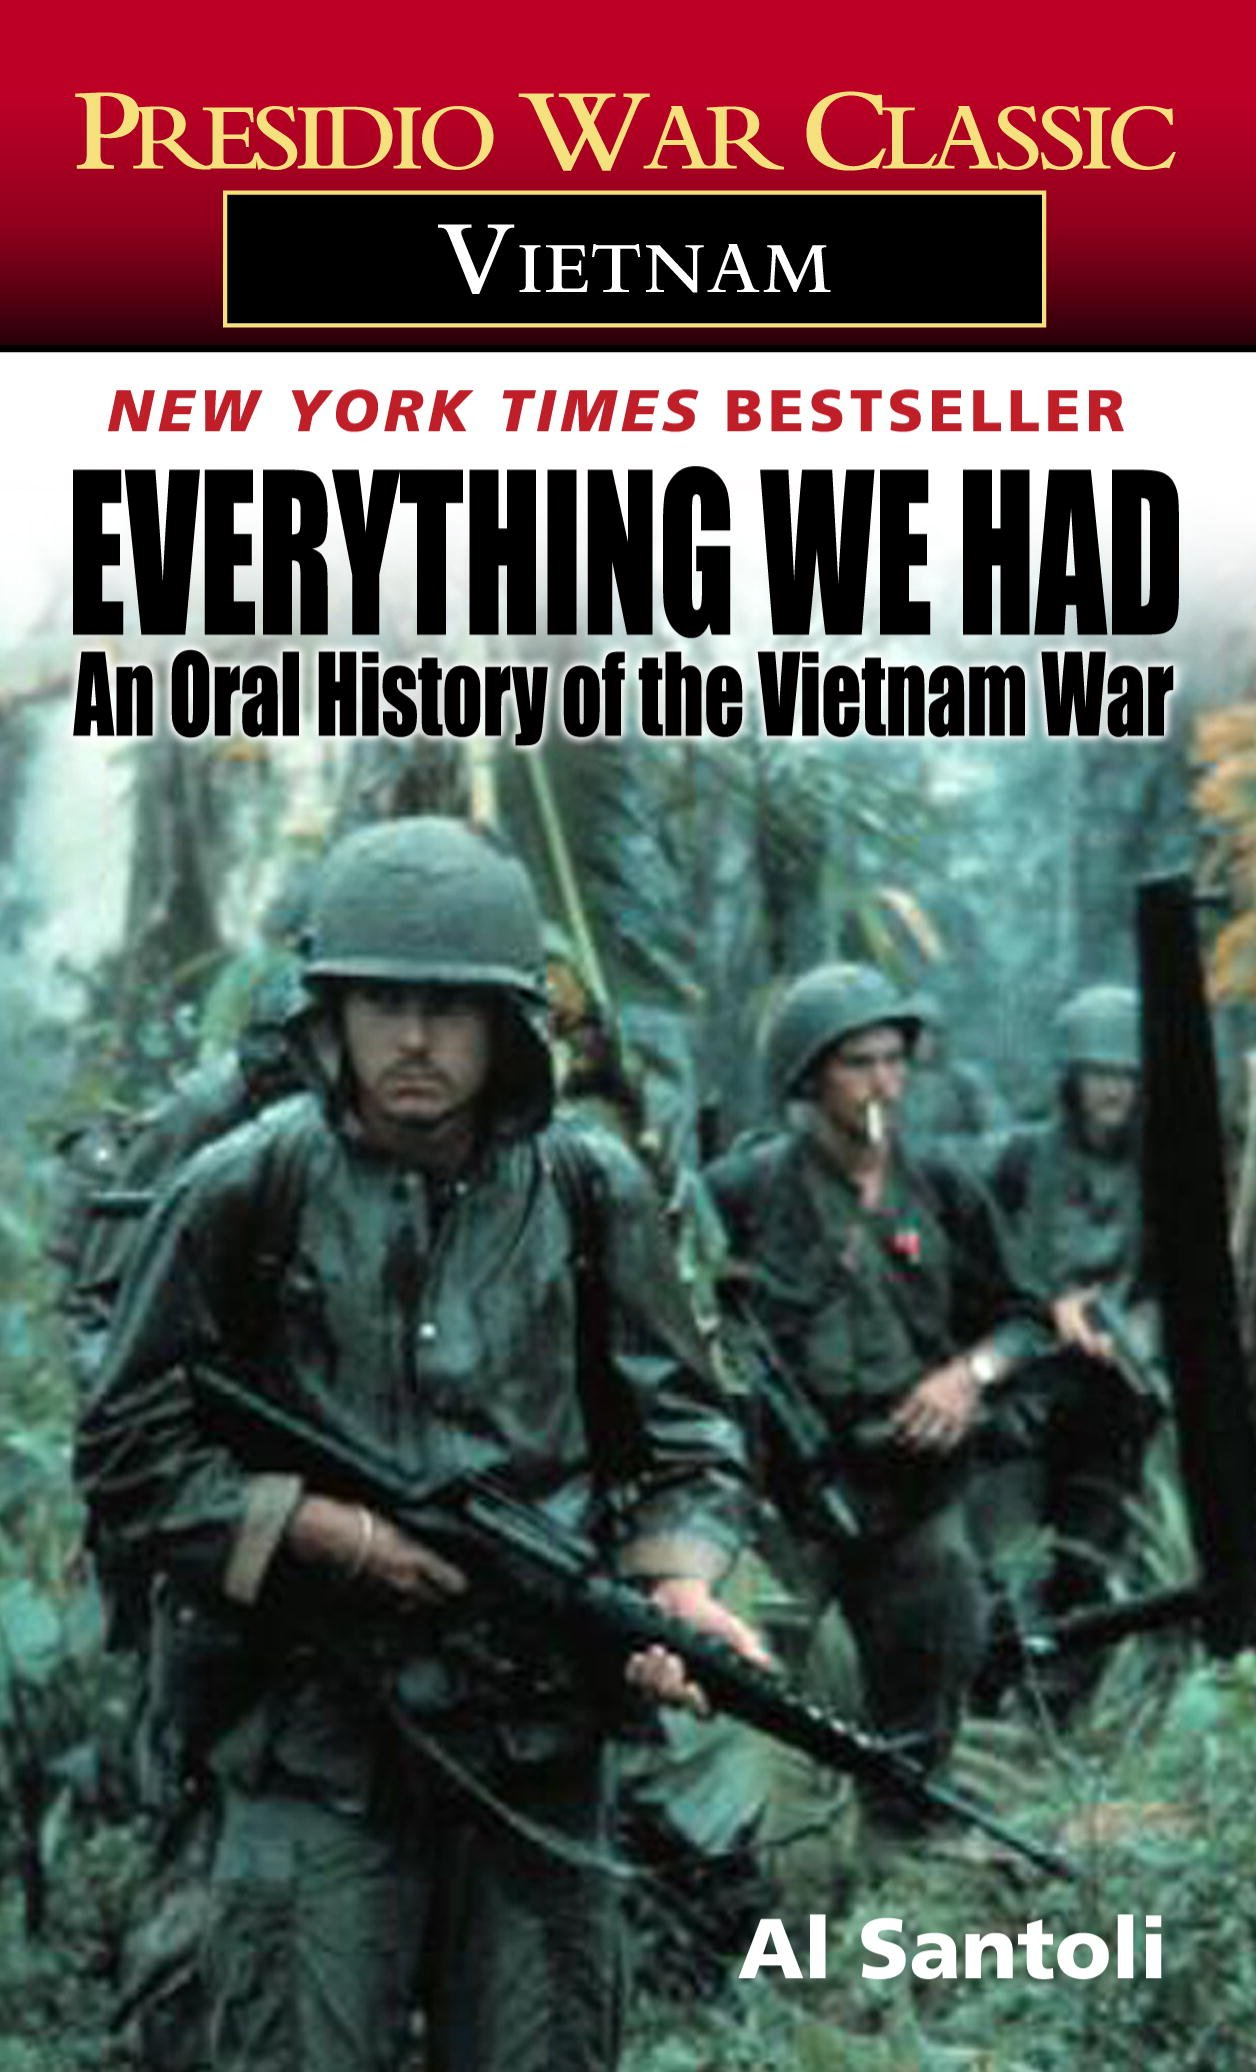 everything-we-had-an-oral-history-of-the-vietnam-war-presidio-war-classic-vietnam